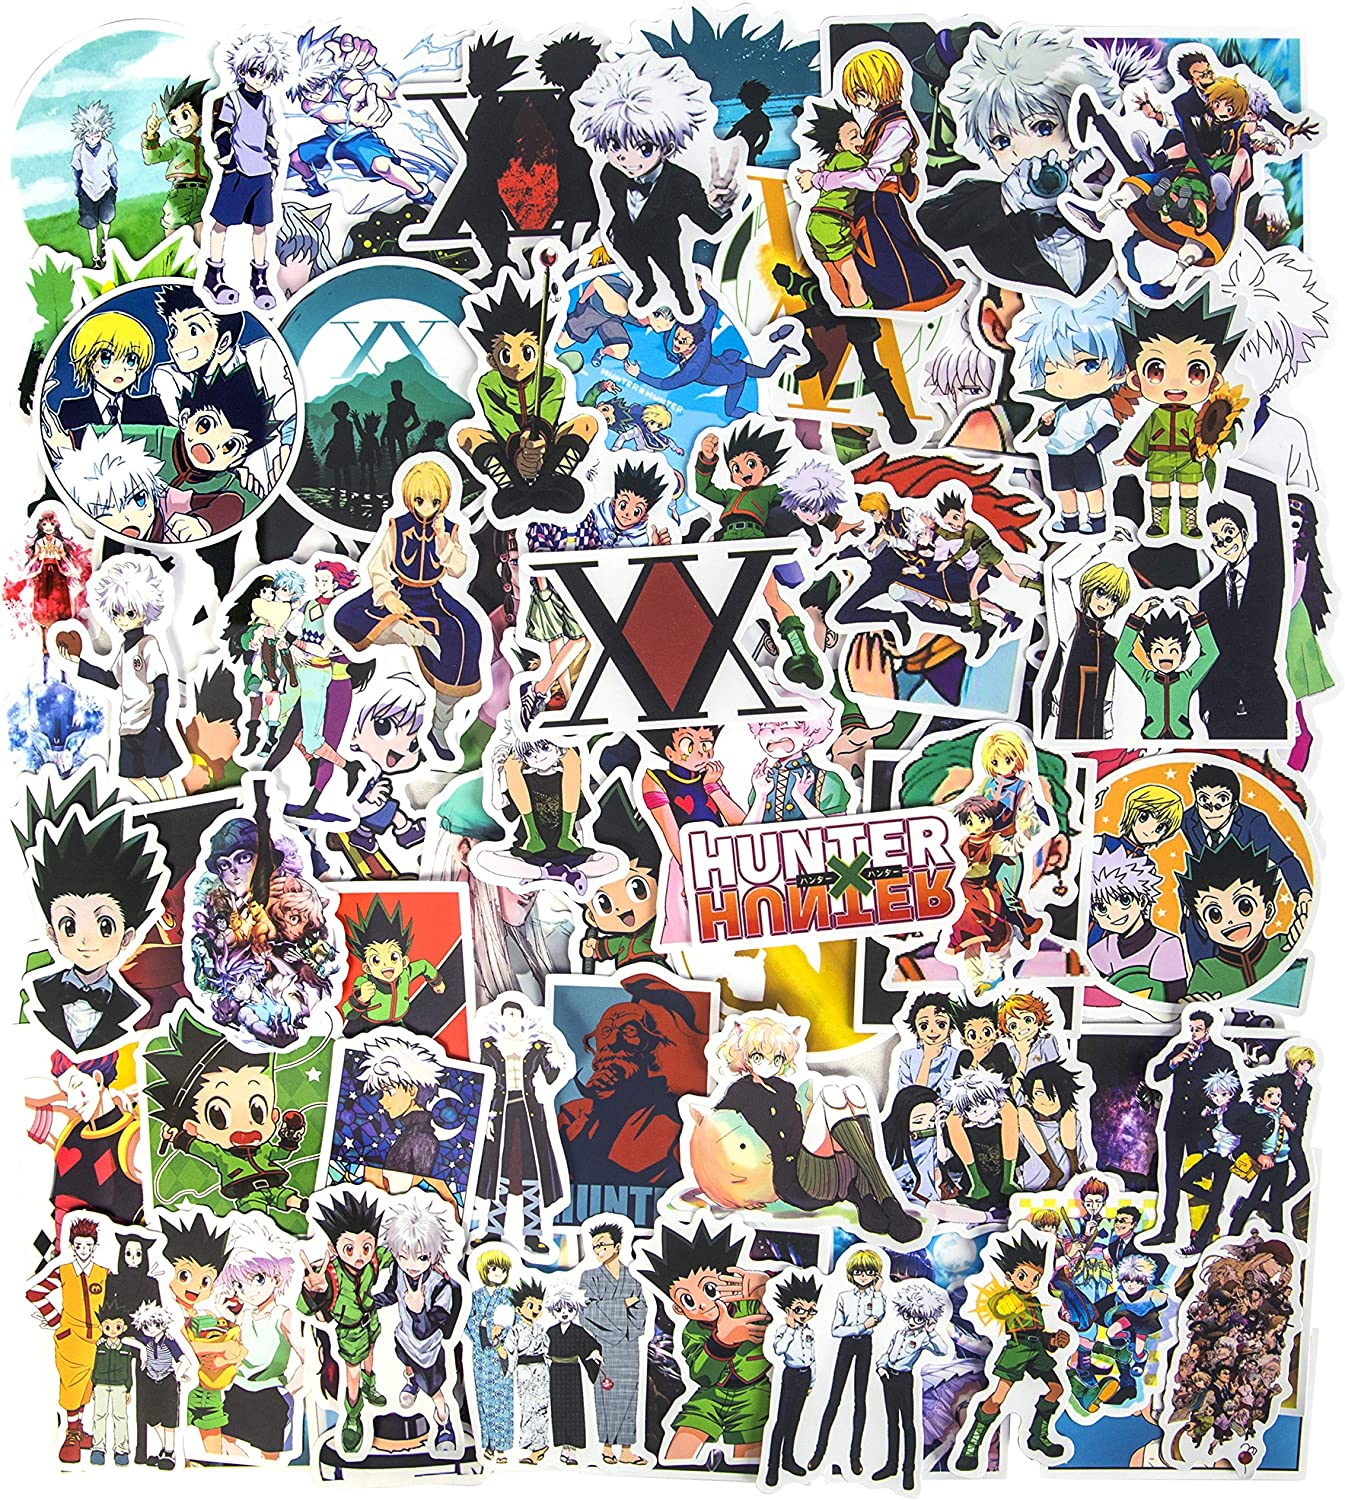 Hunter X Hunter Stickers, 100pcs Japanese Anime Stickers Waterproof Vinyl Stickers for Teens Laptop Stickers Water Bottle Stickers Guitar Computer Skateboard Stickers Gifts for Anime Lovers